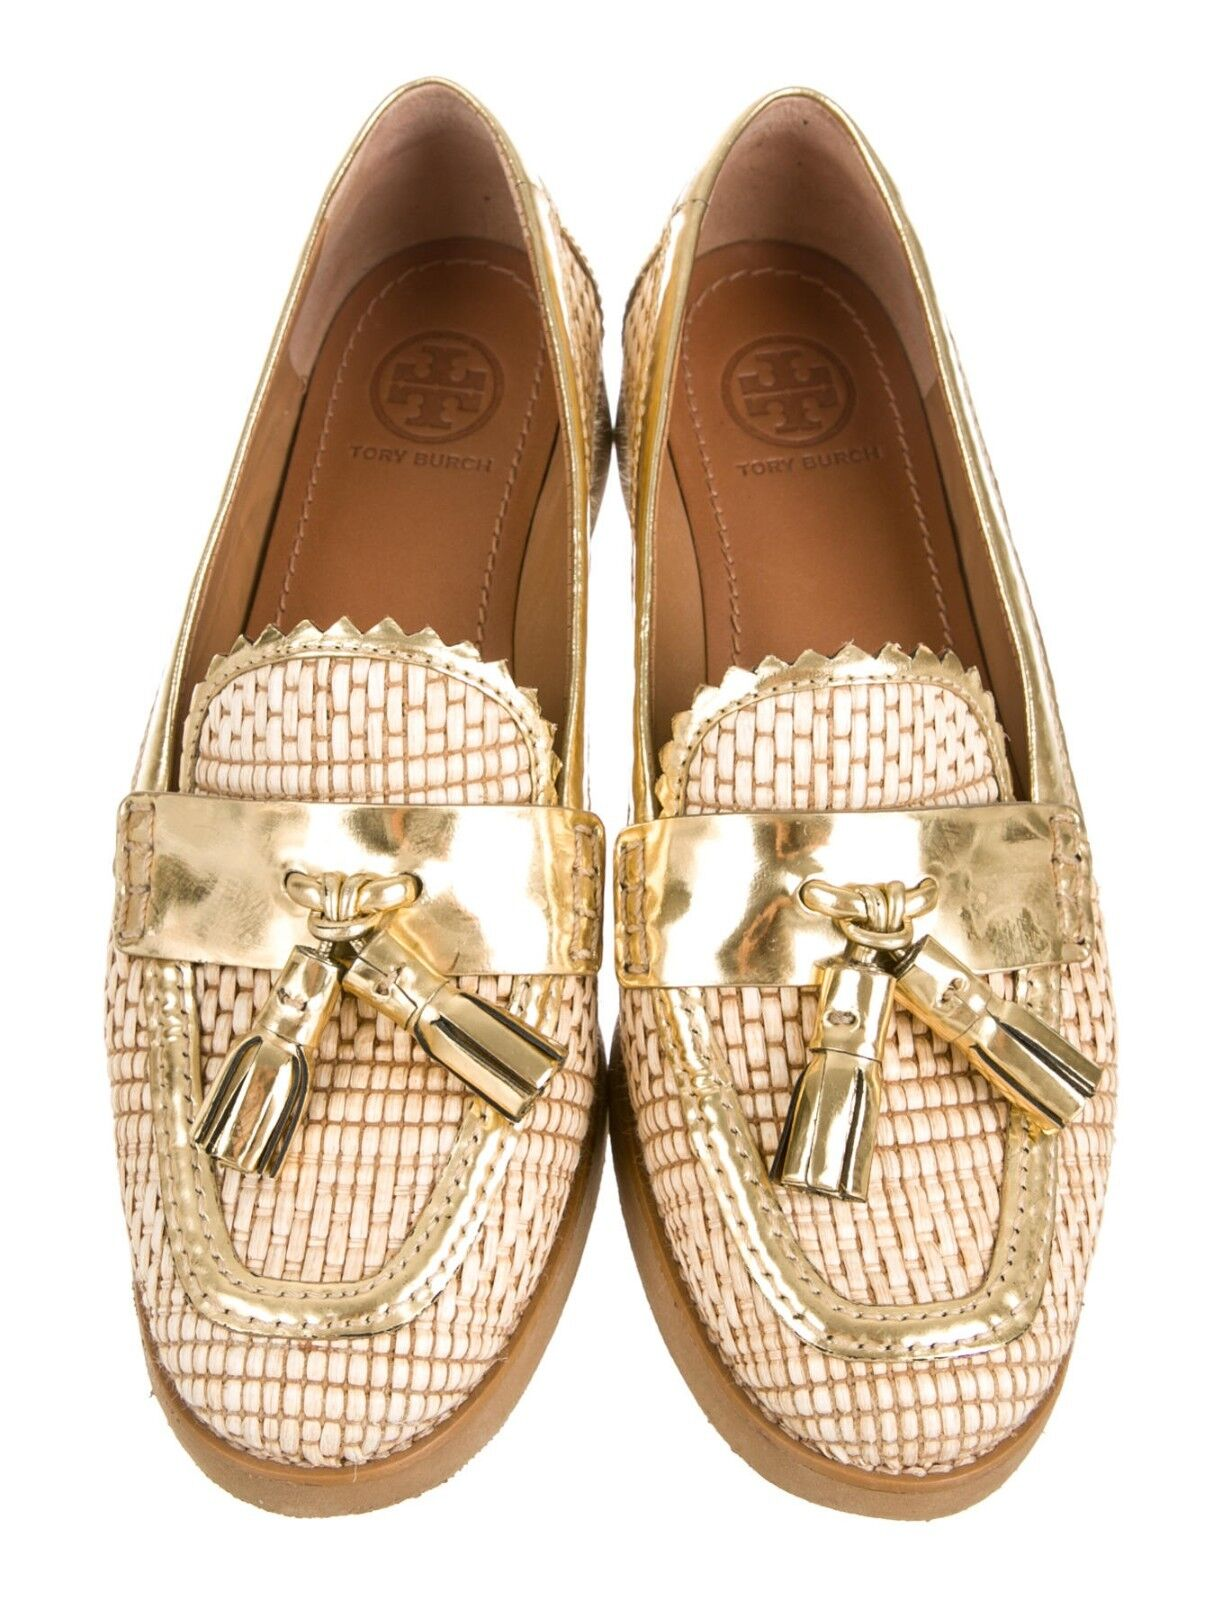 Tory Burch Careen Loafers Raffia Flats shoes shoes shoes Tassels gold 7.5M  295 811df4